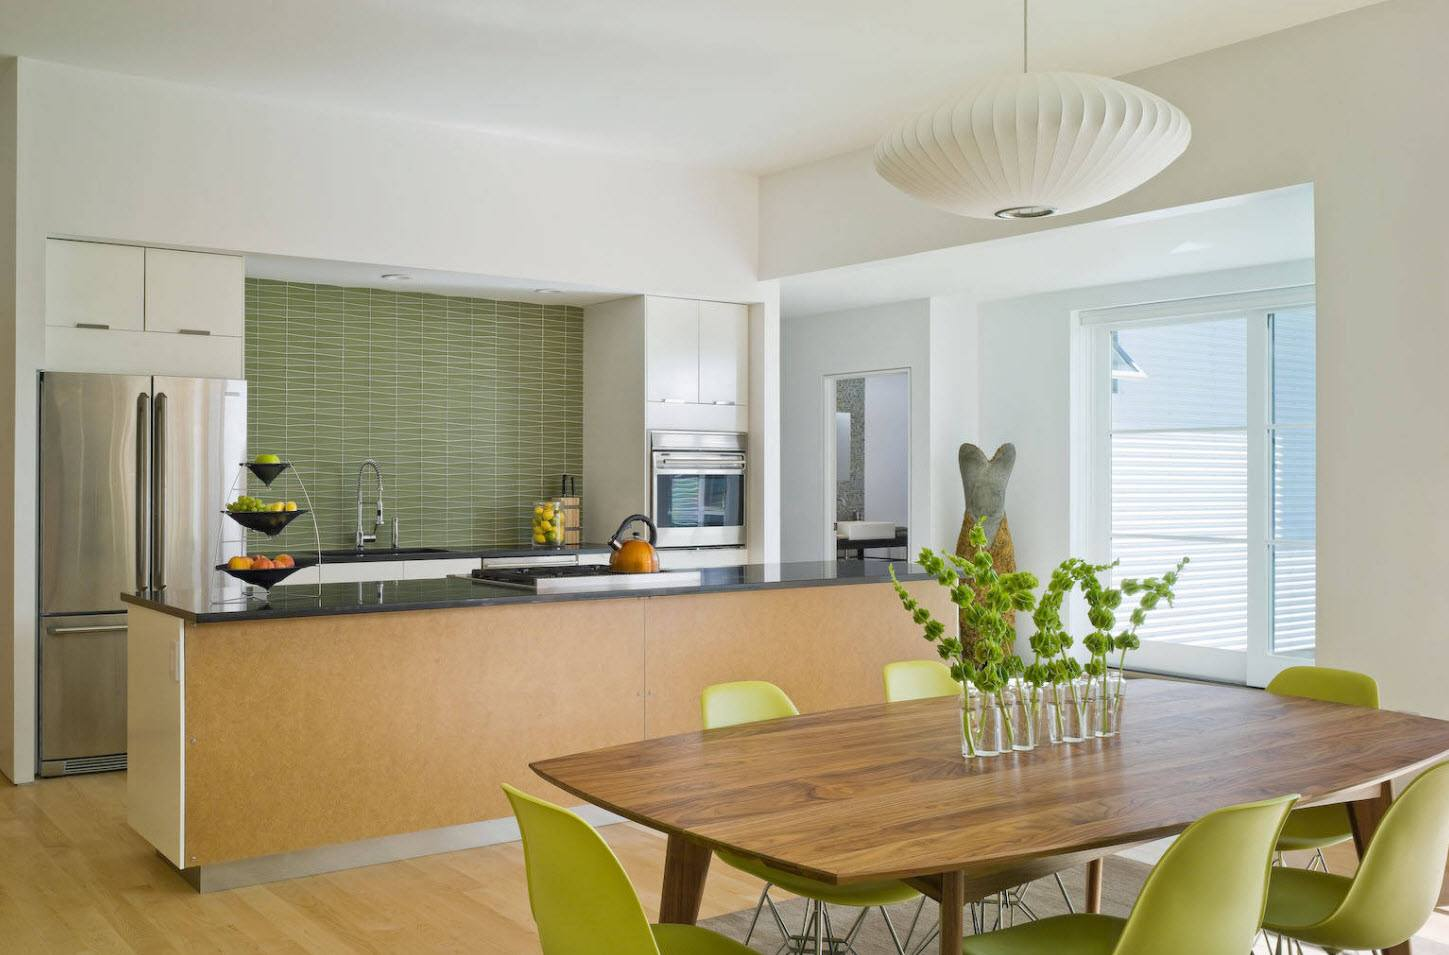 170 Square Feet Kitchen Design Ideas with Photos. Lime and olive colors for the modern room styling